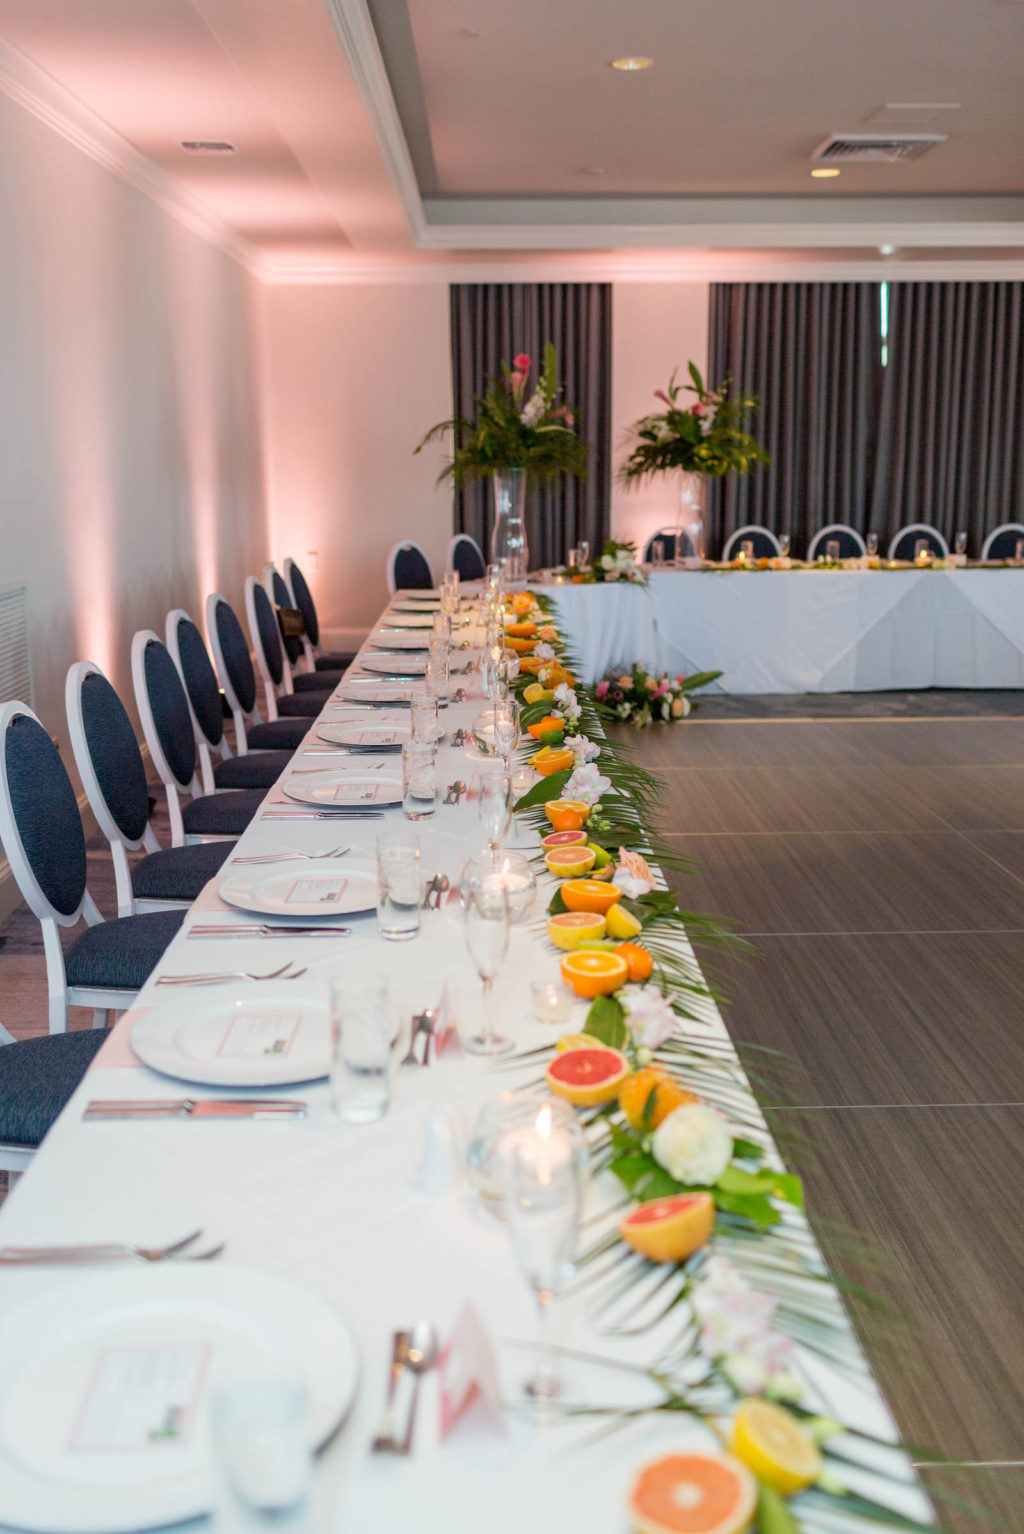 Wedding Head Table | Long Feasting Table with Palm Frond Leaves and Cut Citrus Oranges Lemons and Grapefruit Garland Runner